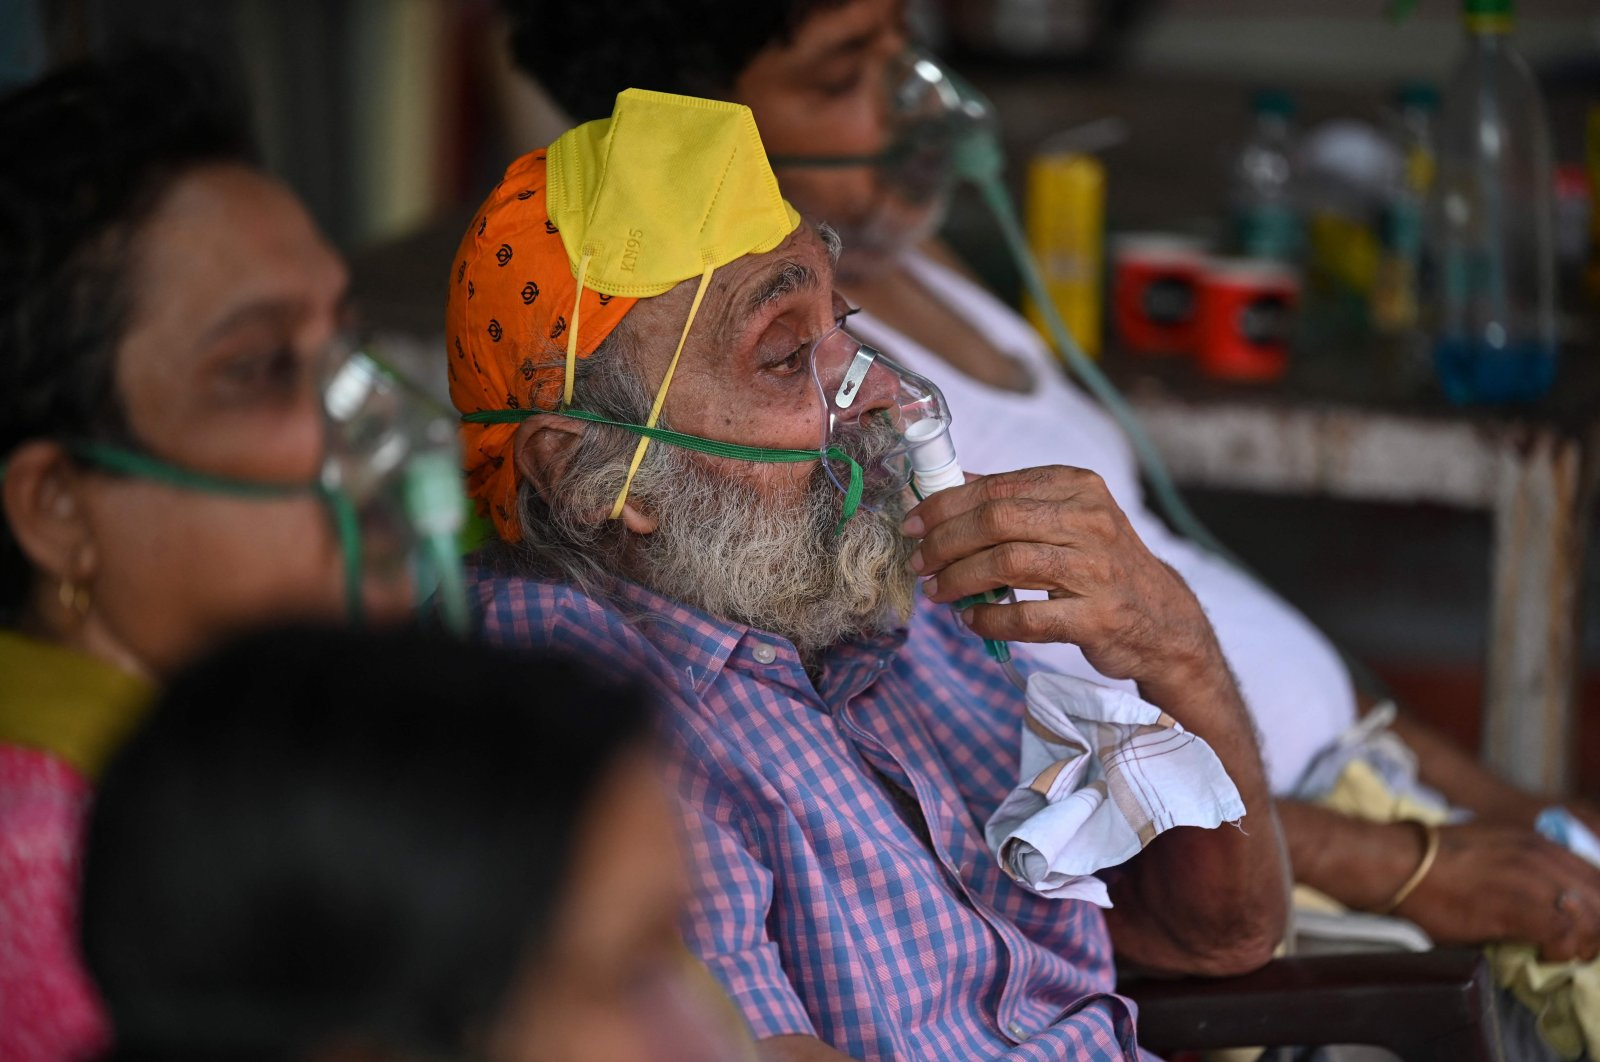 COVID-19 patients breathe with the help of oxygen provided by a Gurdwara, a place of worship for Sikhs, under a tent installed along the roadside amid the coronavirus pandemic in Ghaziabad, India, May 2, 2021. (AFP Photo)